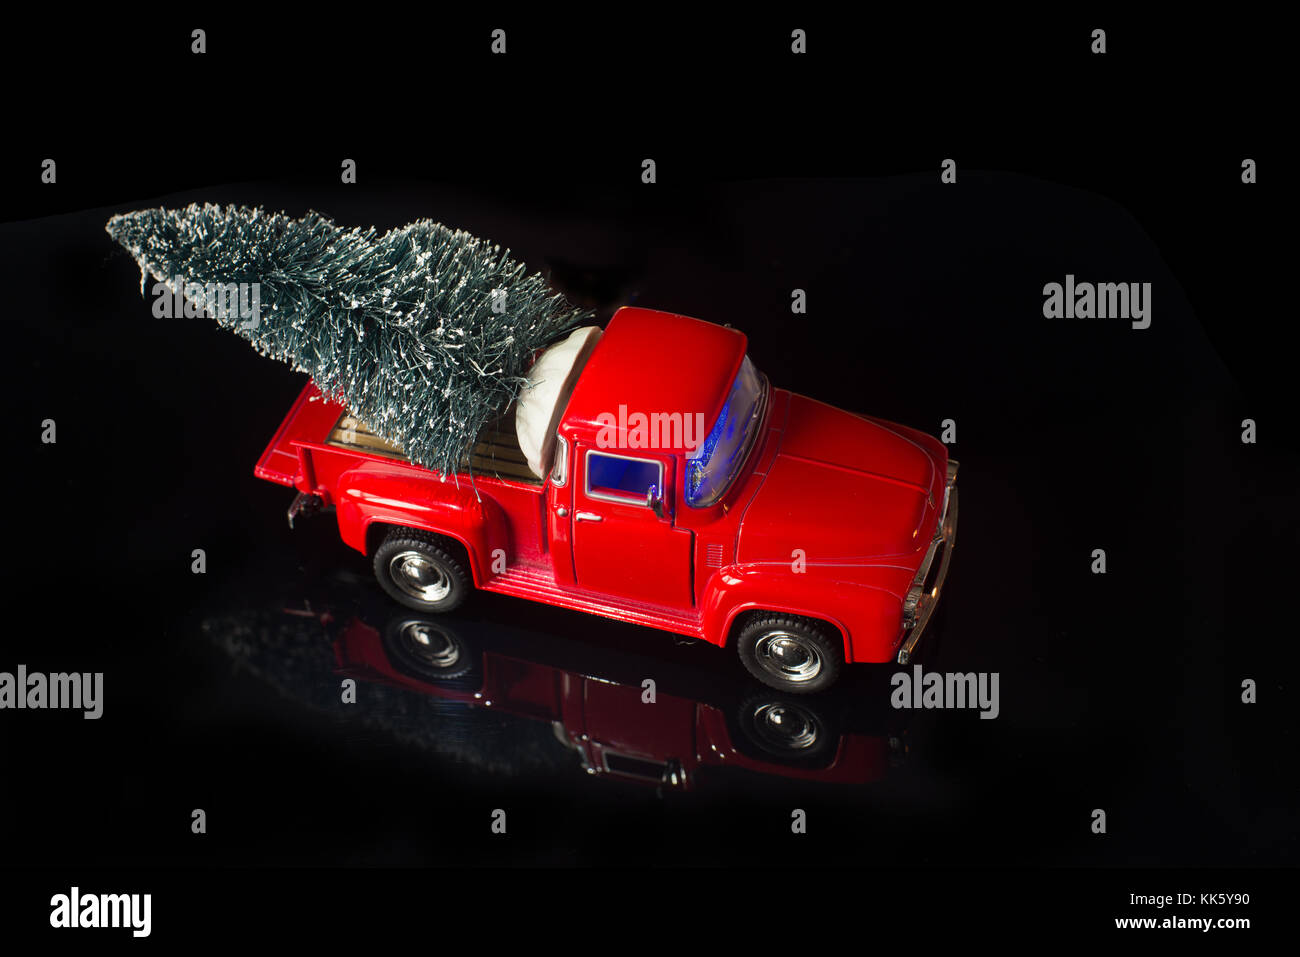 Red Miniature Vintage Truck Deliver Christmas Tree On Its Back Black Background With Reflection Mirror Of The Objects